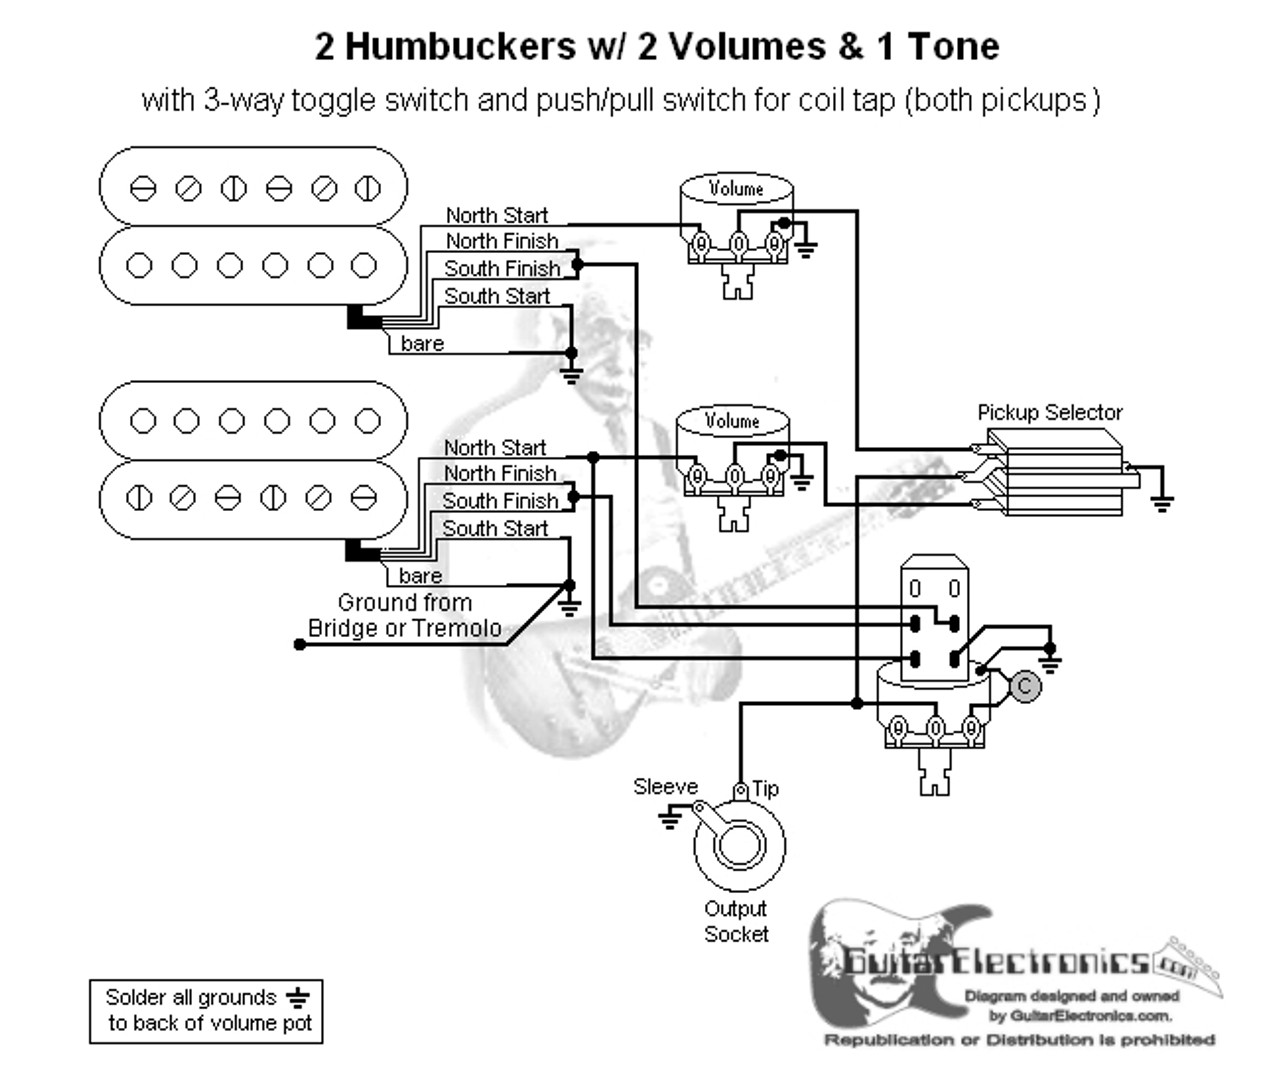 medium resolution of diagram 2 humbuckers 3way toggle switch 2 volumes 1 tone coil tap diagram 2 humbuckers 3 way lever switch 2 volumes 1 tone individual